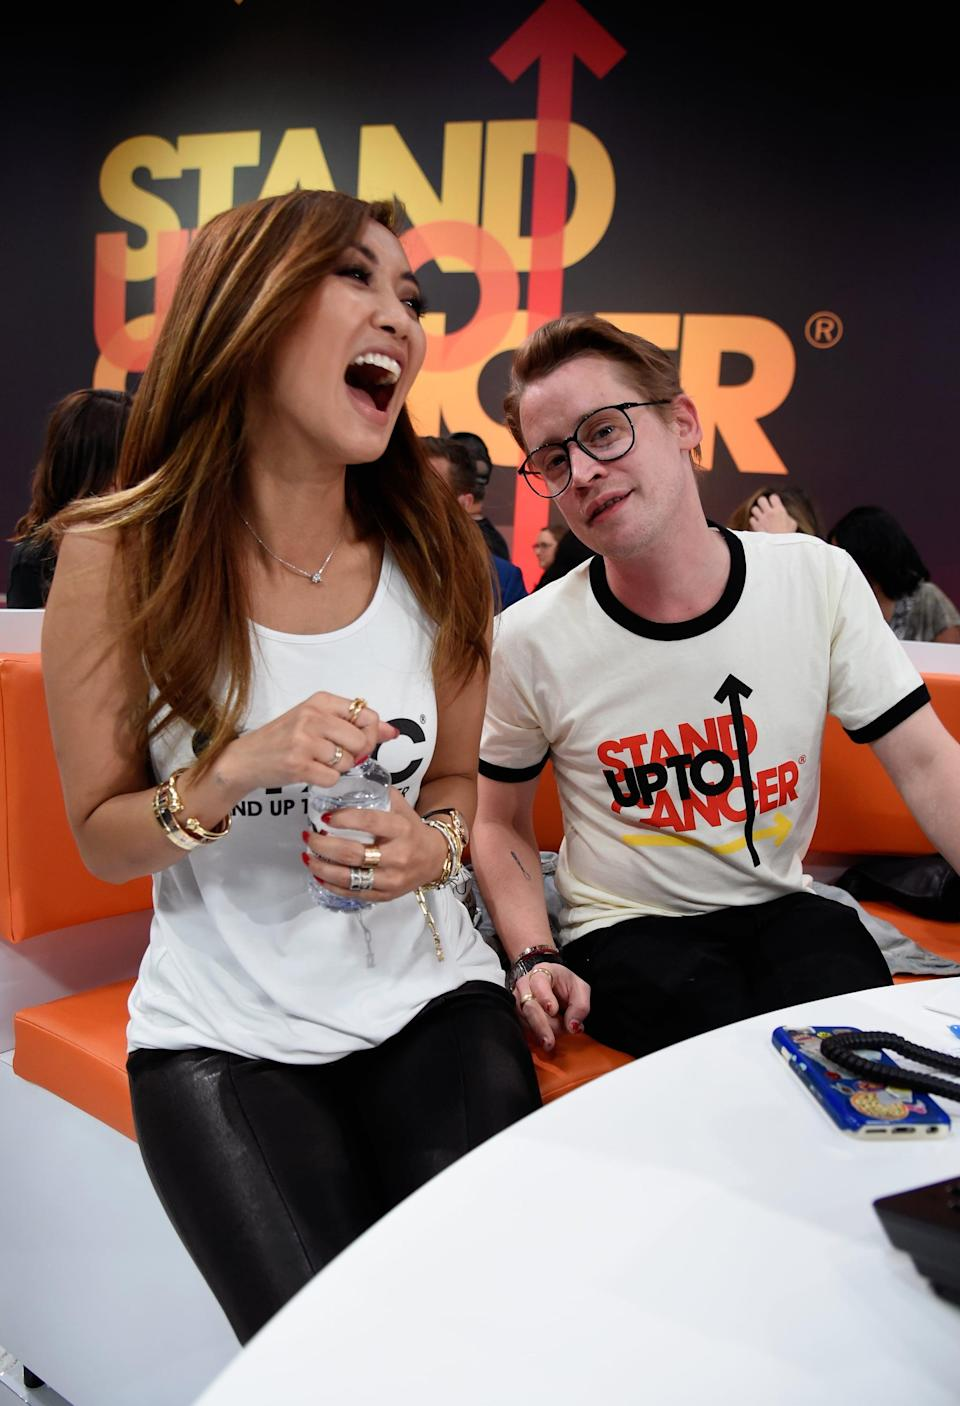 """<p>In 2017, Macaulay filmed the movie <strong>Changeland</strong> and began dating his costar, Disney Channel star Brenda Song. <strong>Entertainment Tonight</strong> reported that <a href=""""http://www.etonline.com/exclusive-macaulay-culkin-and-brenda-song-are-dating-show-pda-during-theme-park-date-pics-88377"""" class=""""link rapid-noclick-resp"""" rel=""""nofollow noopener"""" target=""""_blank"""" data-ylk=""""slk:the new couple were spotted on a double date"""">the new couple were spotted on a double date</a> with <strong>Changeland</strong> director <a class=""""link rapid-noclick-resp"""" href=""""https://www.popsugar.com/Seth-Green"""" rel=""""nofollow noopener"""" target=""""_blank"""" data-ylk=""""slk:Seth Green"""">Seth Green</a> and his wife, Clare Grant. </p> <p>They've stayed pretty private about their relationship for the most part, although <a href=""""http://people.com/movies/inside-macaulay-culkin-brenda-song-love-story/"""" class=""""link rapid-noclick-resp"""" rel=""""nofollow noopener"""" target=""""_blank"""" data-ylk=""""slk:they did both speak to Esquire"""">they did both speak to <strong>Esquire</strong></a> in 2020. """"People don't realize how incredibly kind and loyal and sweet and smart he is,"""" Brenda said, as reported by <strong>People</strong>. """"Truly what makes Mack so special is that he is so unapologetically Mack . . . He knows who he is, and he's 100 percent okay with that. And that to me is an incredibly sexy quality."""" </p> <p>The couple also revealed at the time that they were trying for a baby. In April 2021, they announced the birth of their son, Dakota Song Culkin. </p>"""